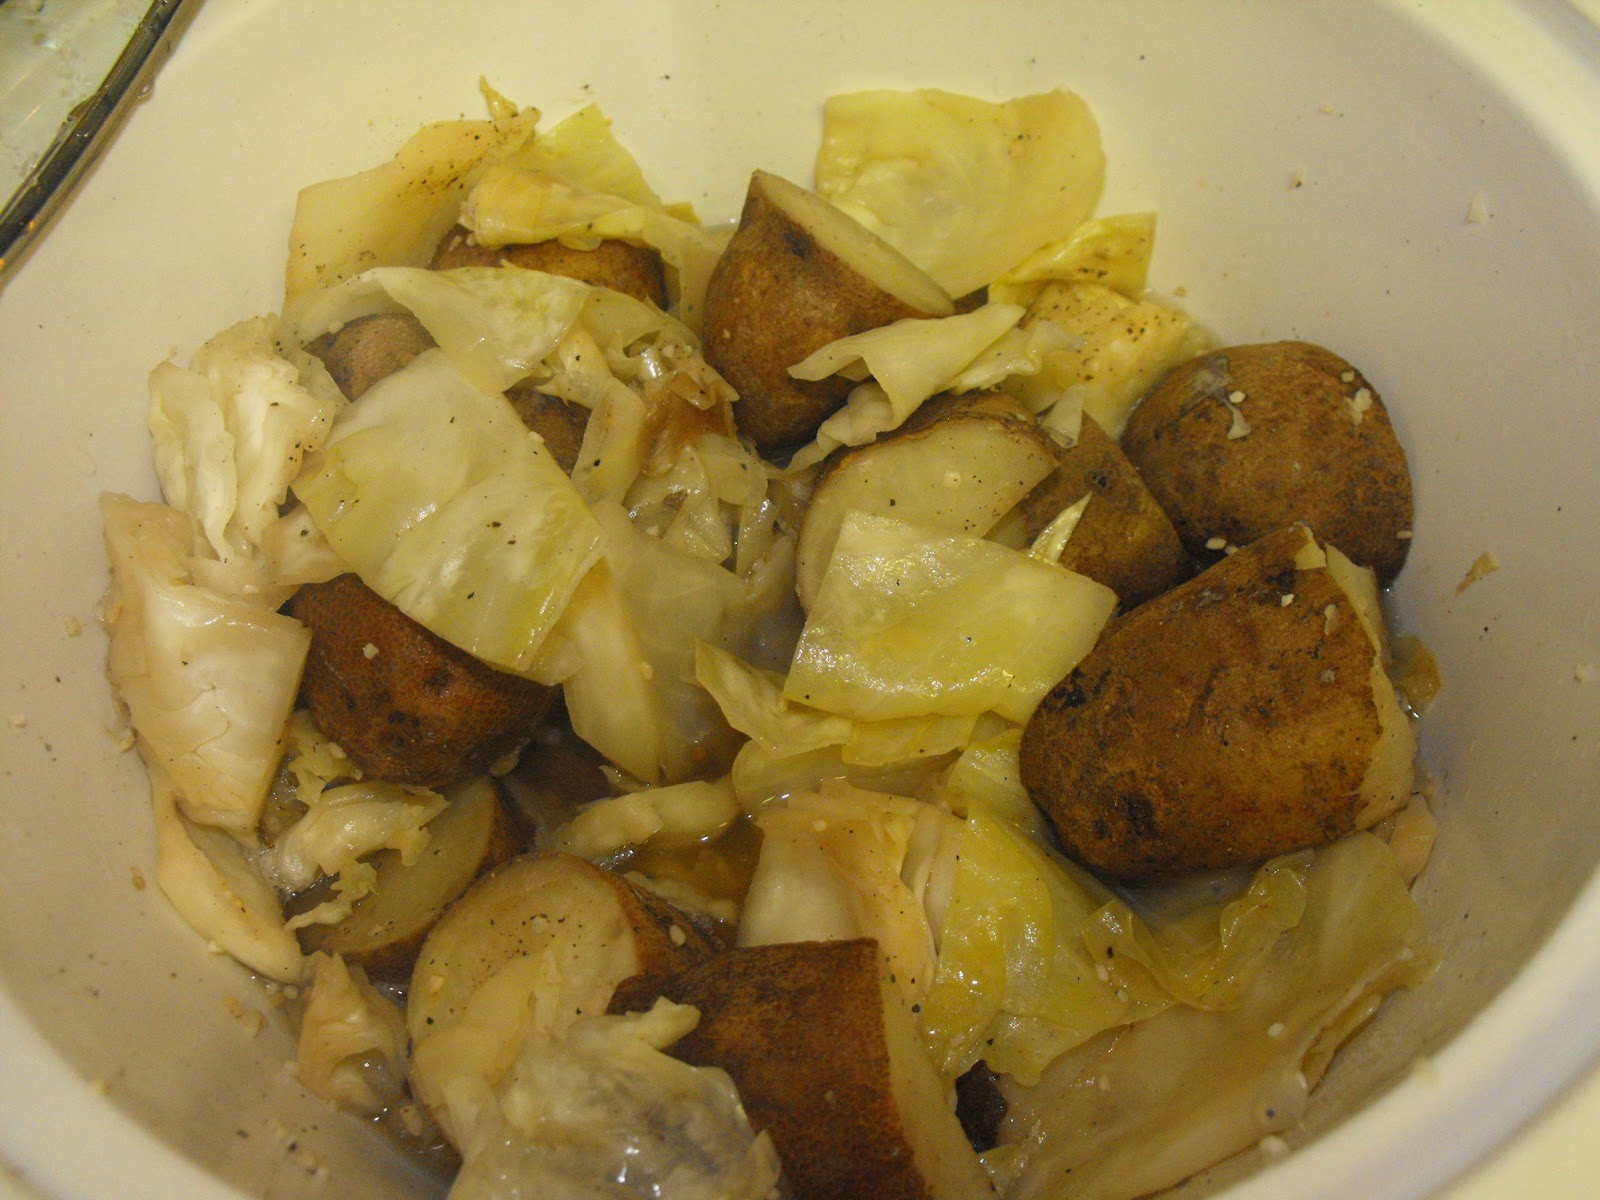 Cabbage And Potatoes  Our Everyday Harvest Crock Pot Cabbage and Potatoes